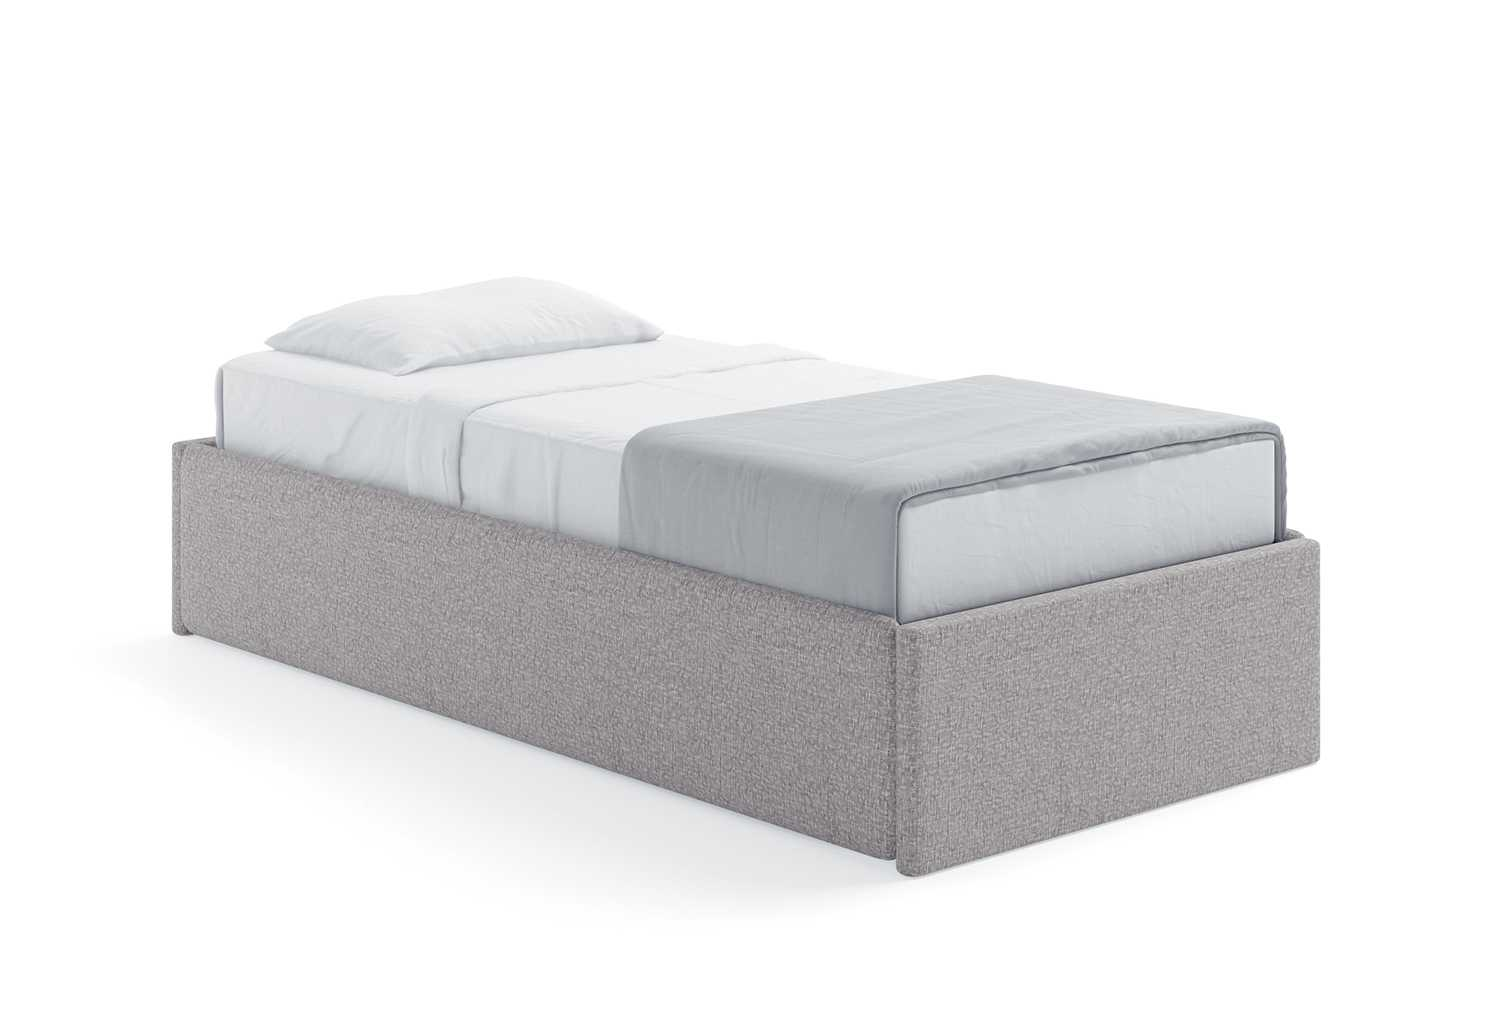 Letto Sommier.Less Sommier Single Low Bed Clever